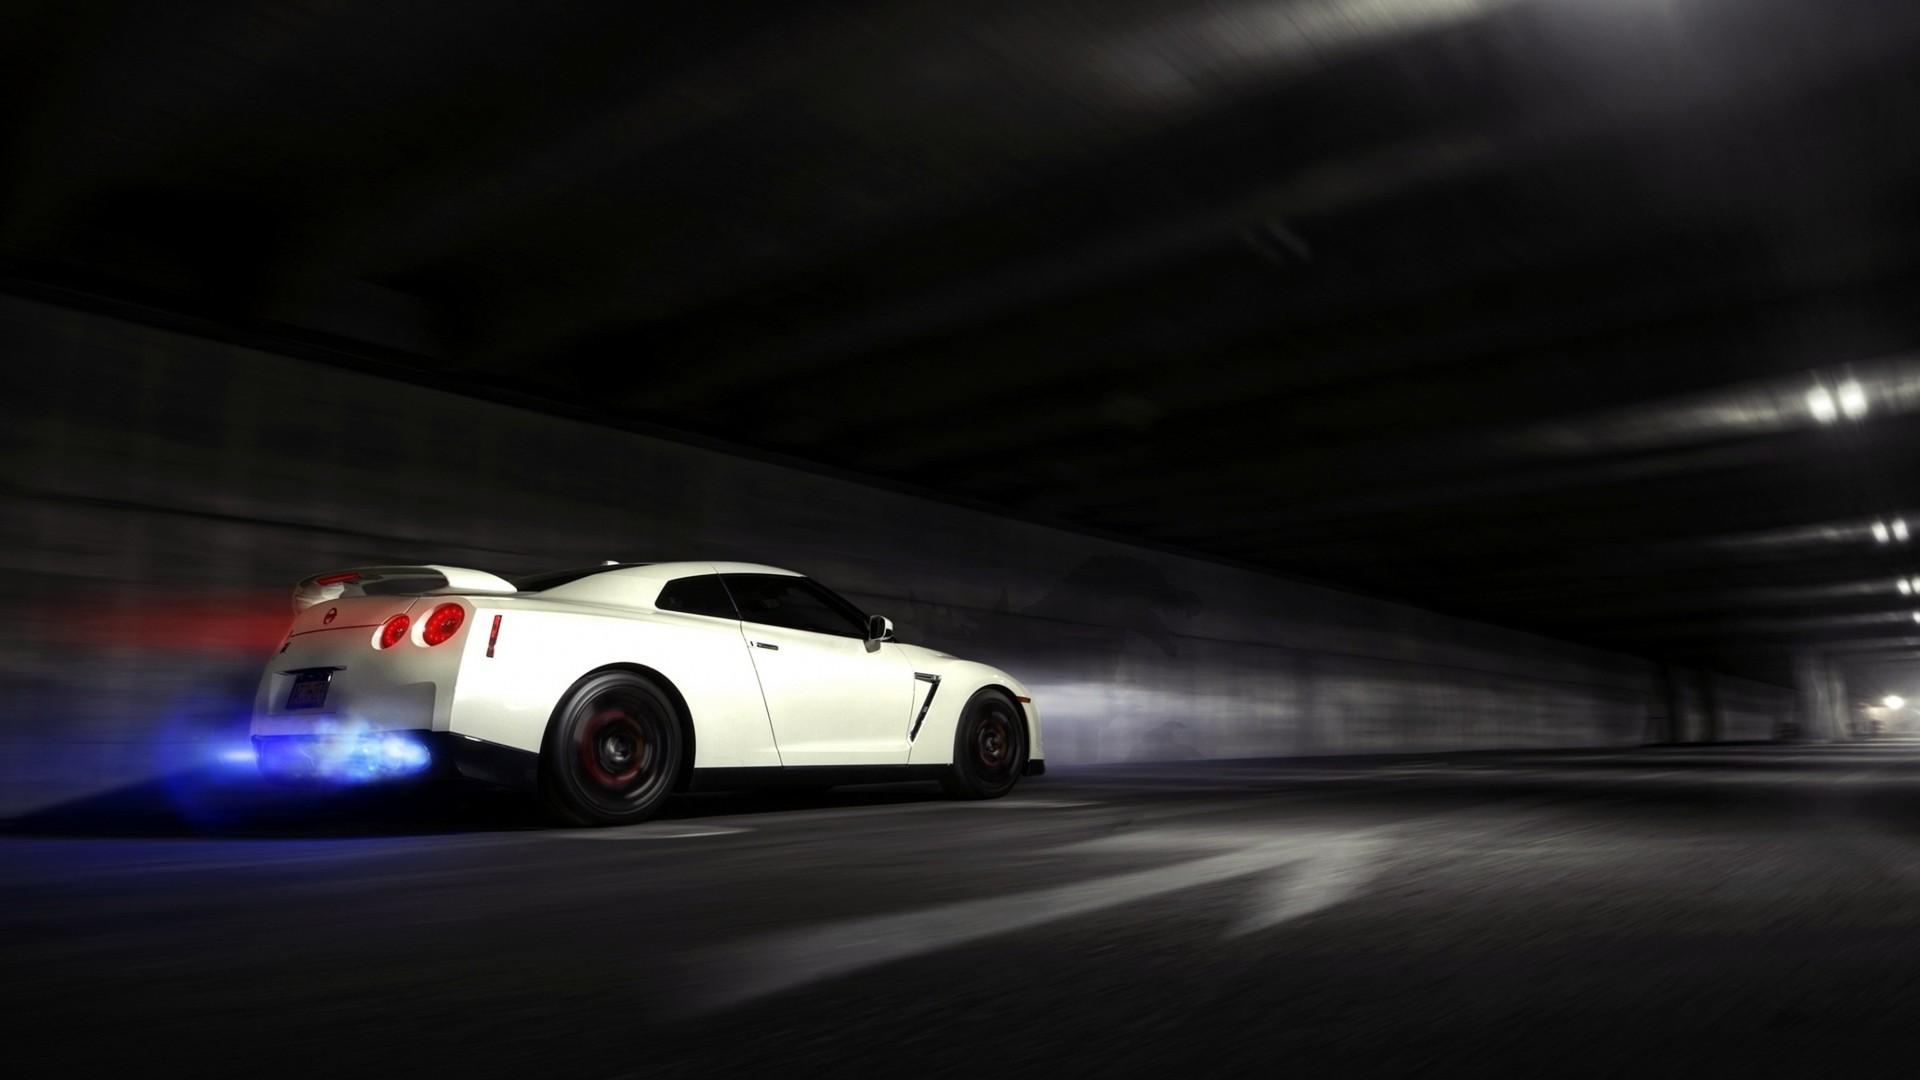 Nissan Skyline GTR Backfire Flame wallpaper | | 50718 |  WallpaperUP